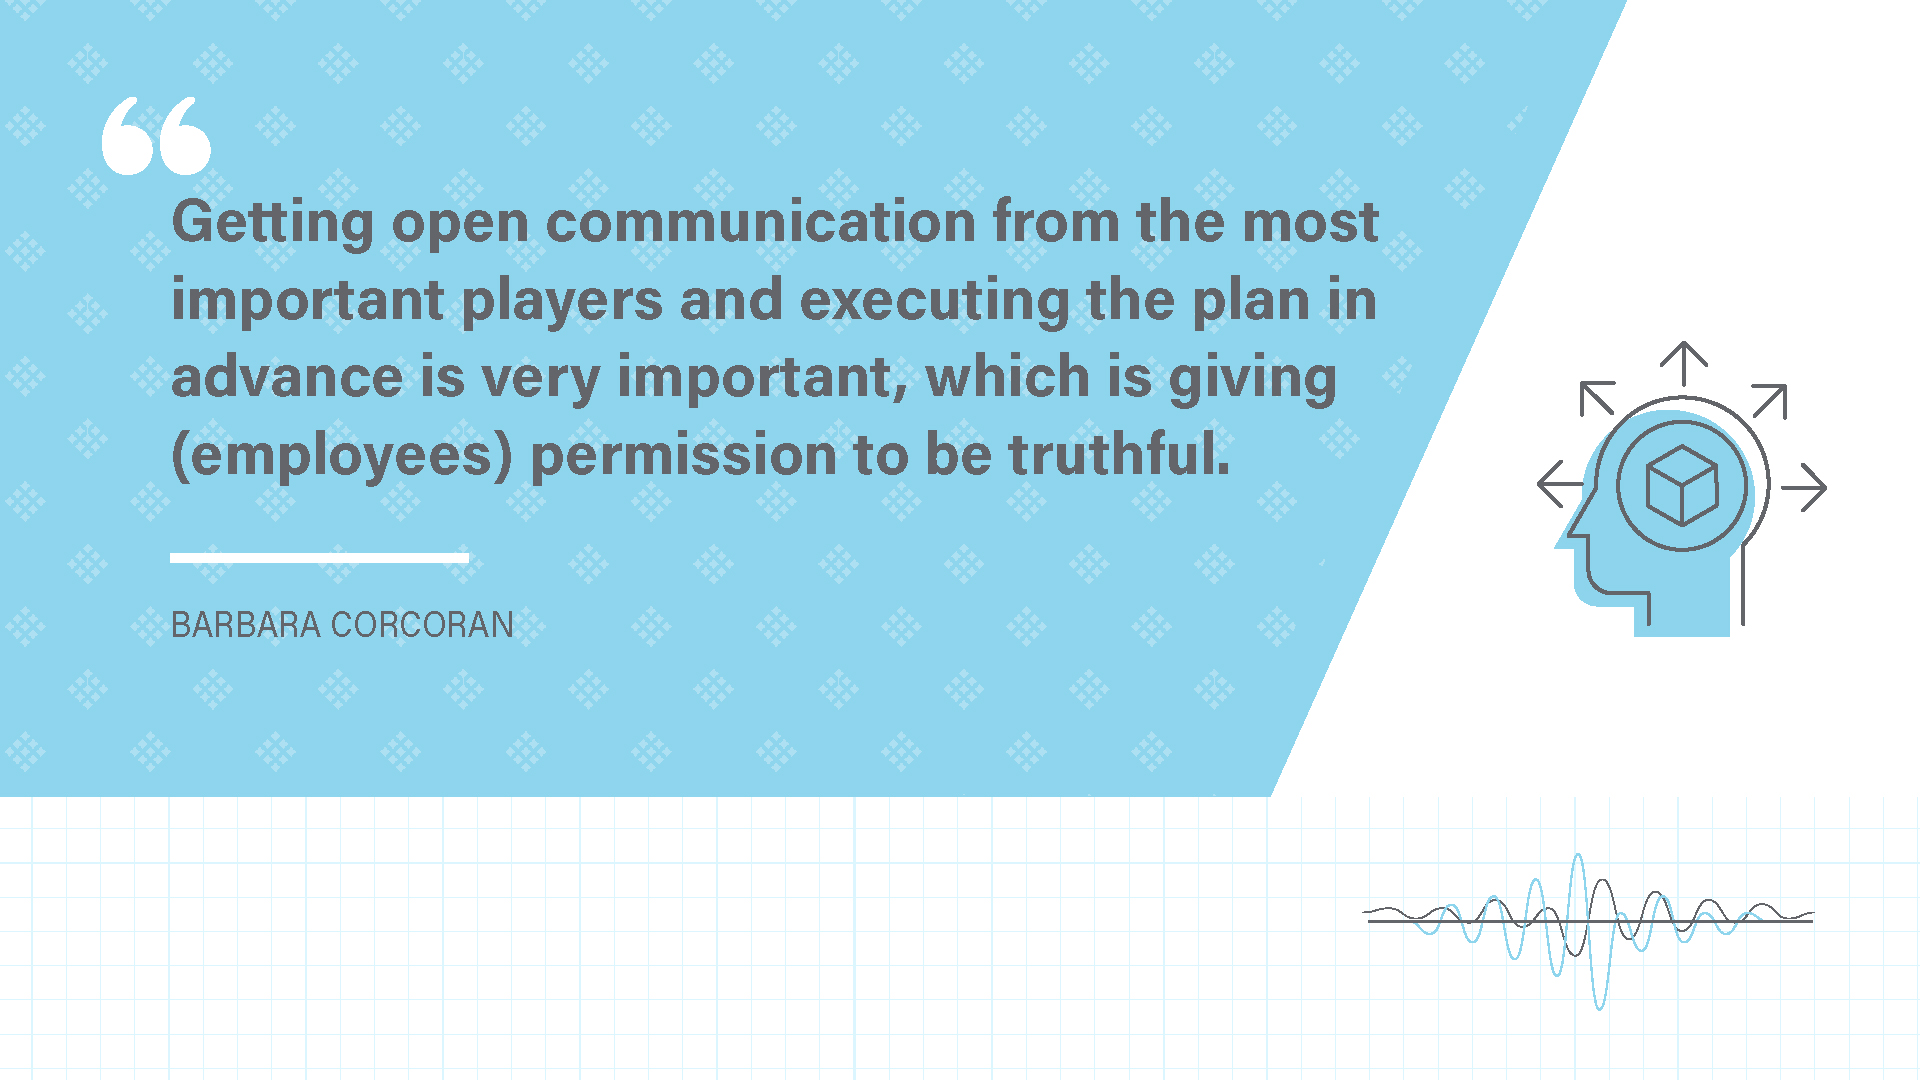 """Getting open communication from the most important players and executing the plan in advance is very important, which is giving (employees) permission to be truthful."""